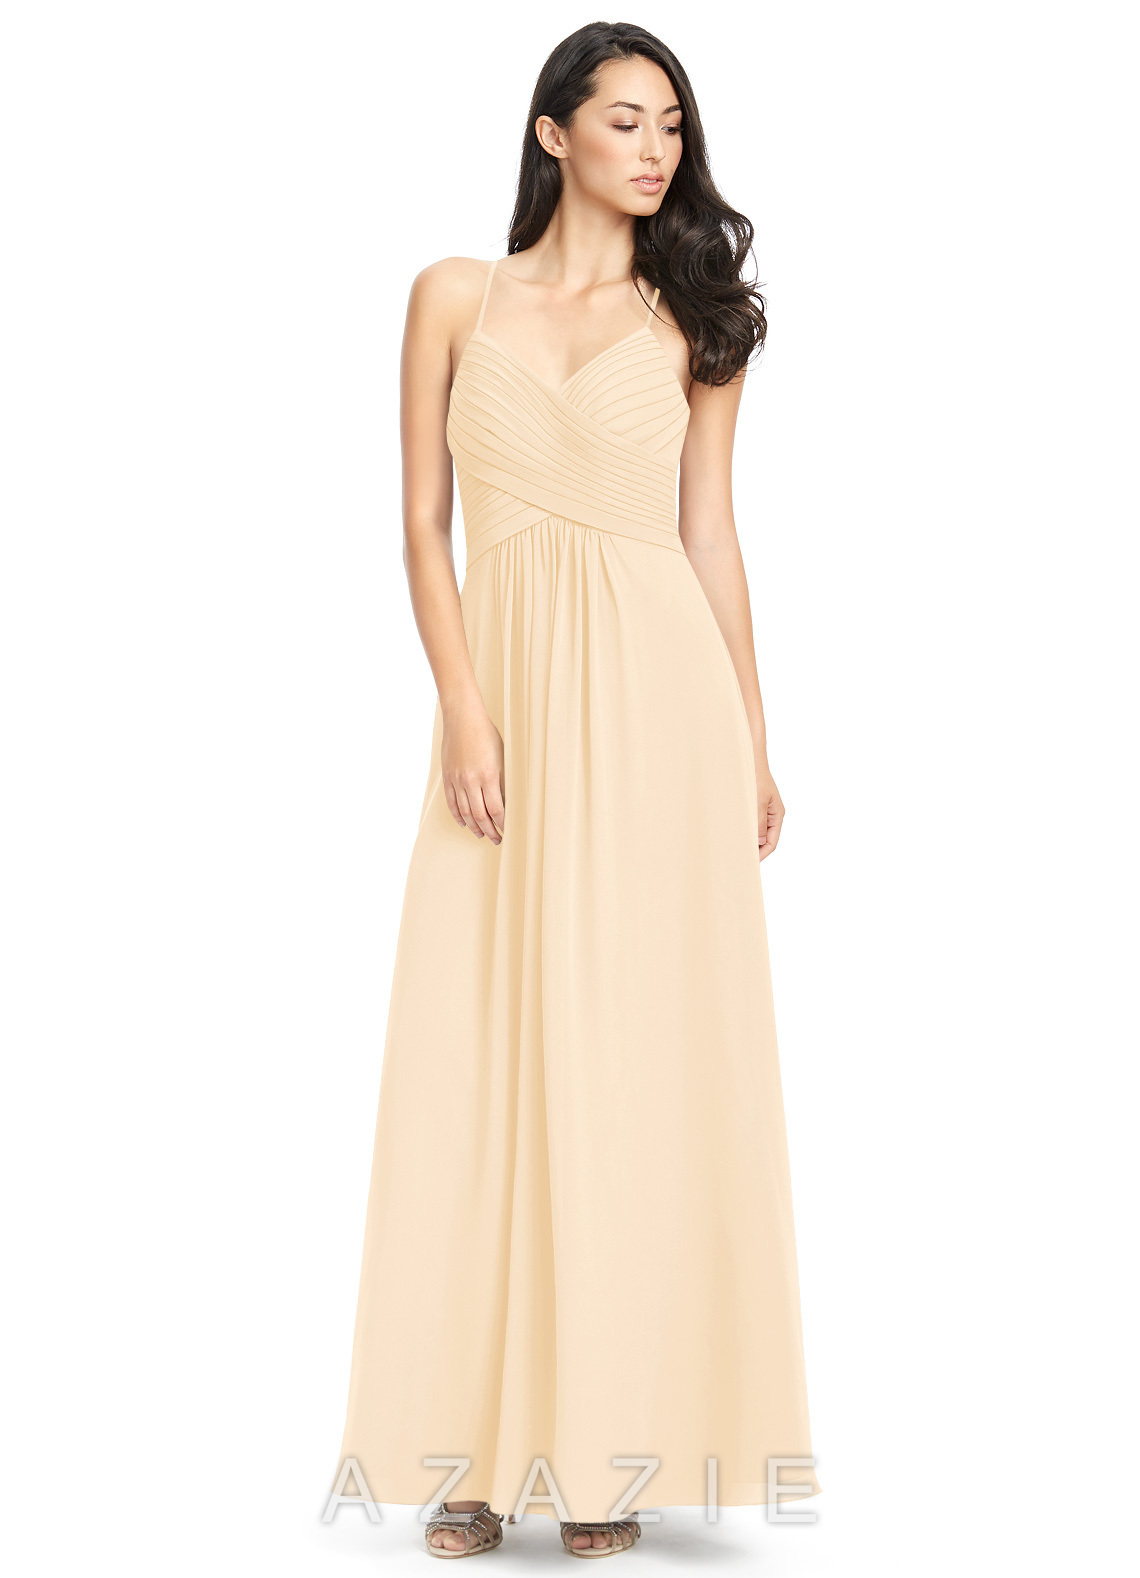 cd9f8b3a225 Azazie Haleigh Bridesmaid Dress - Peach